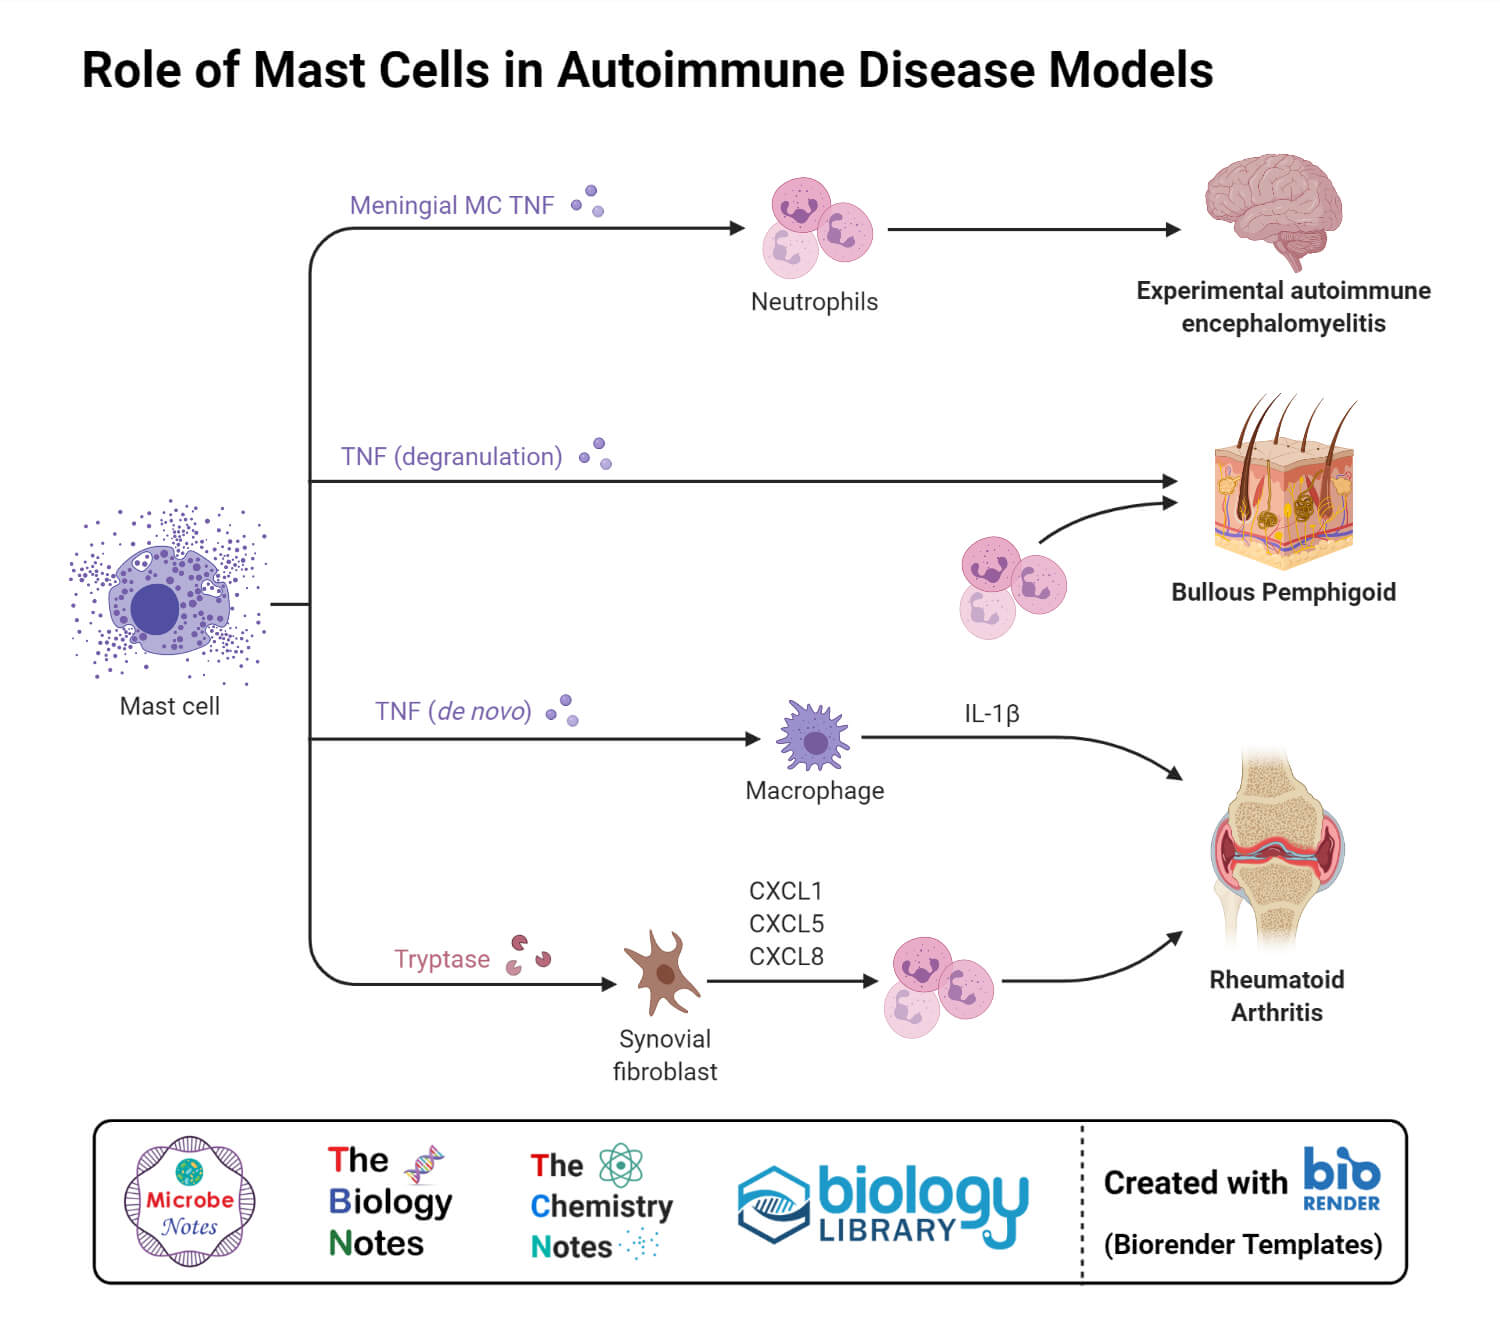 Role of Mast Cells in Autoimmune Disease Models